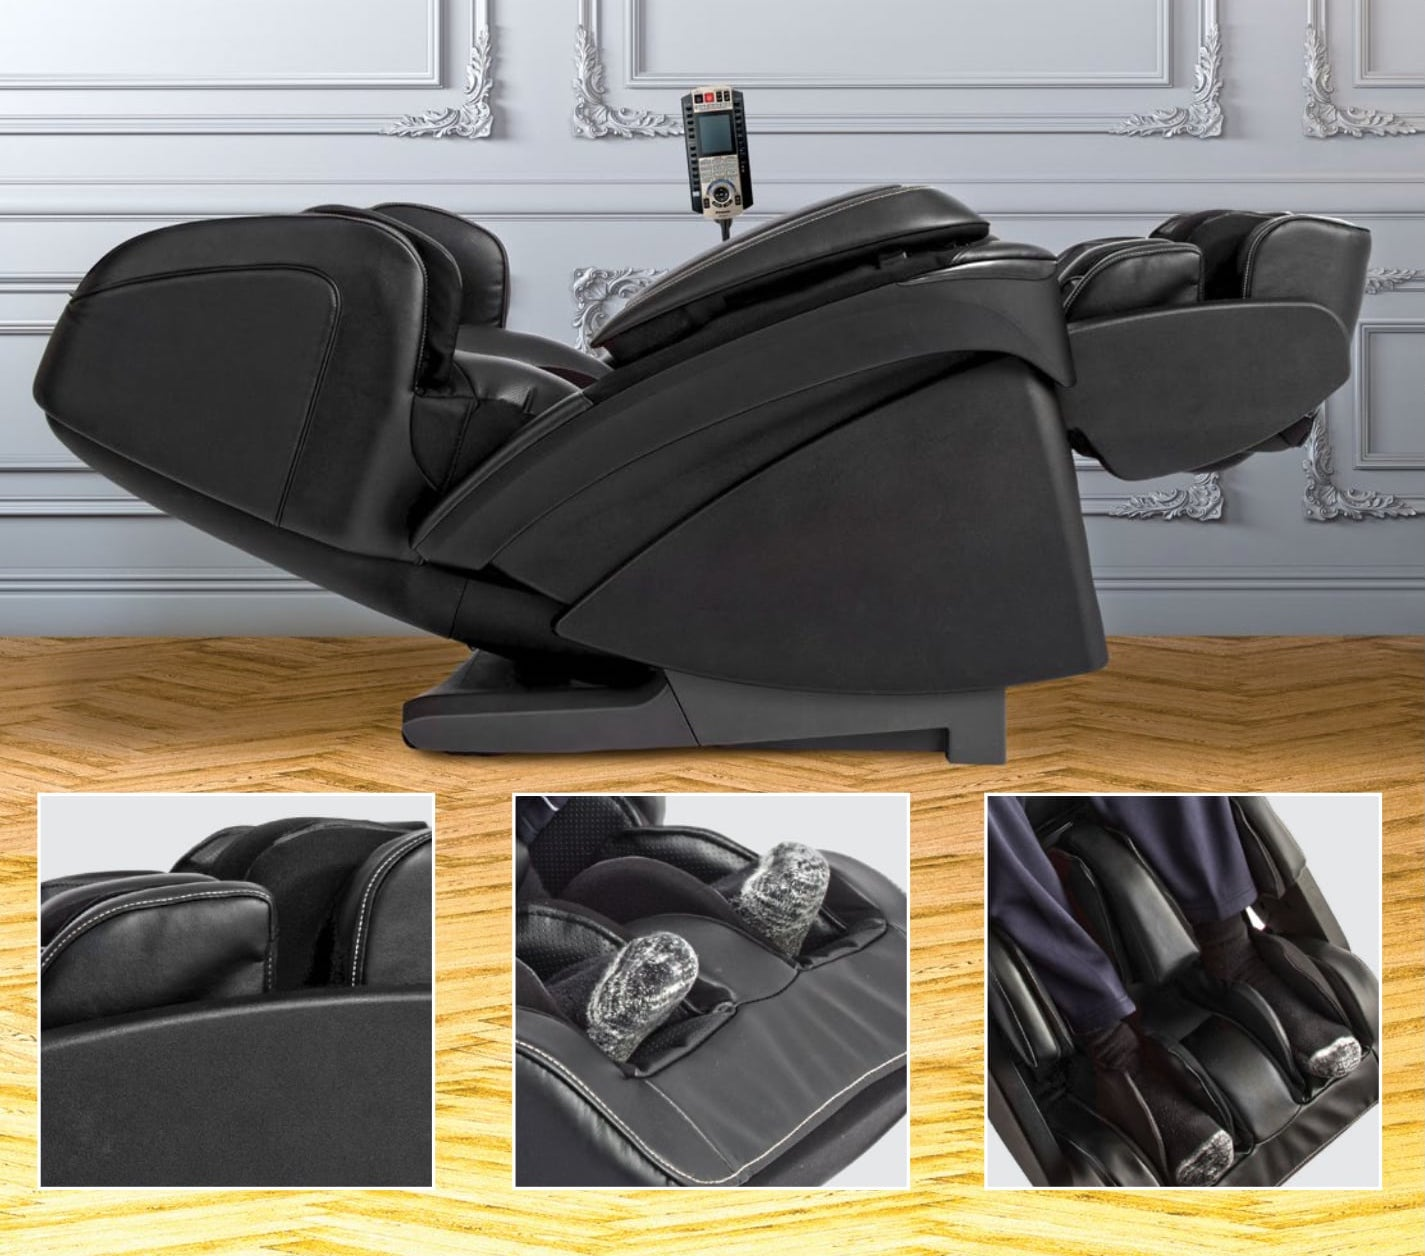 panasonic-maj7-massage-chair-full